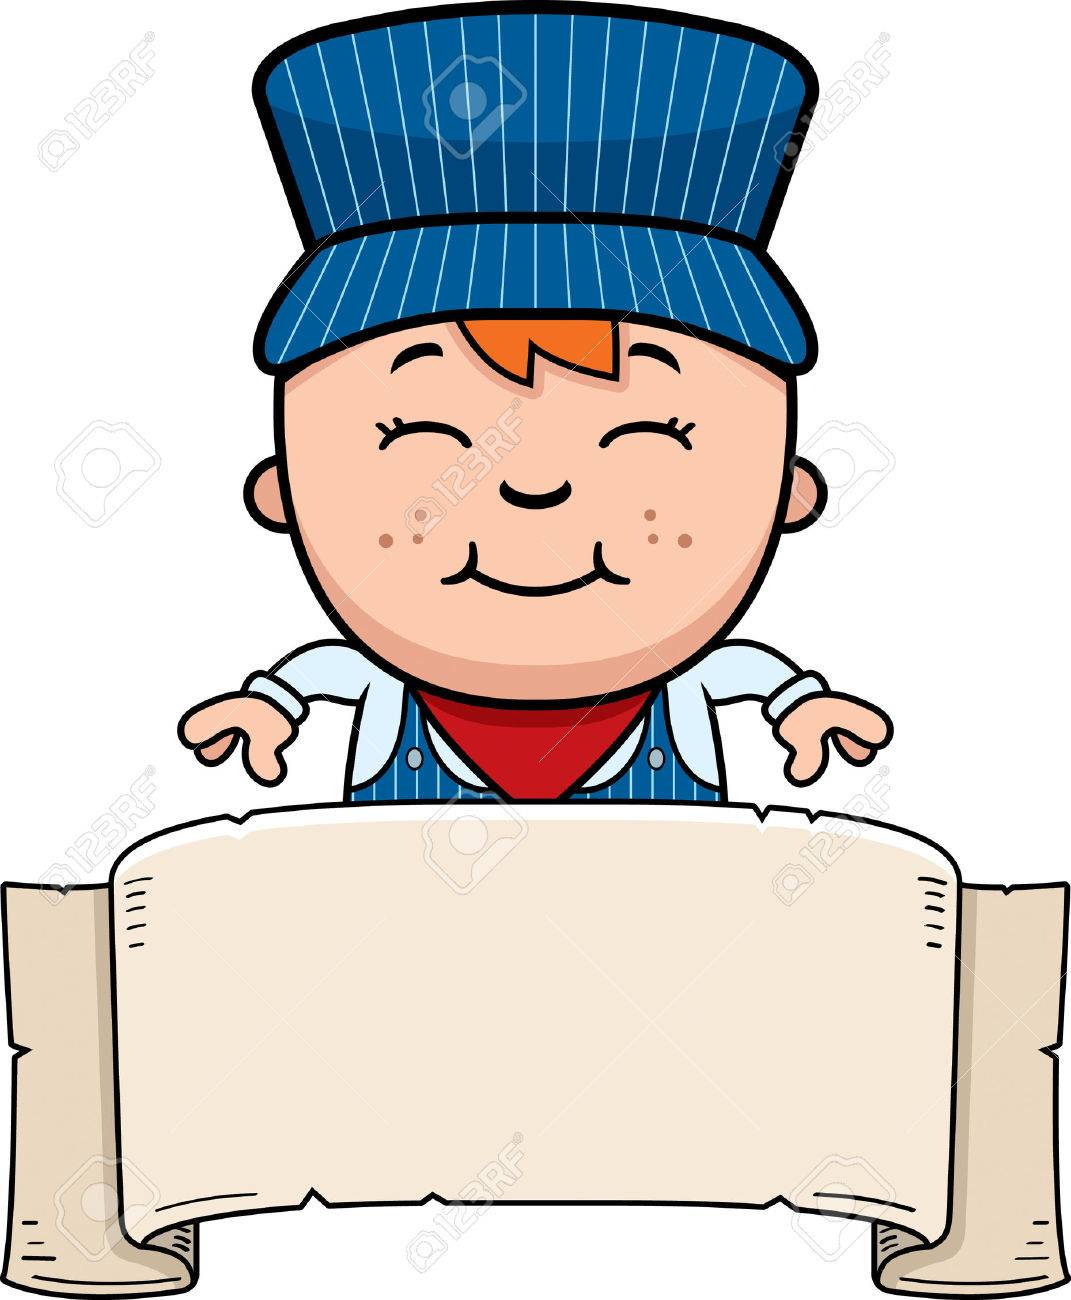 1071x1300 A Cartoon Illustration Of A Boy Train Conductor With A Banner